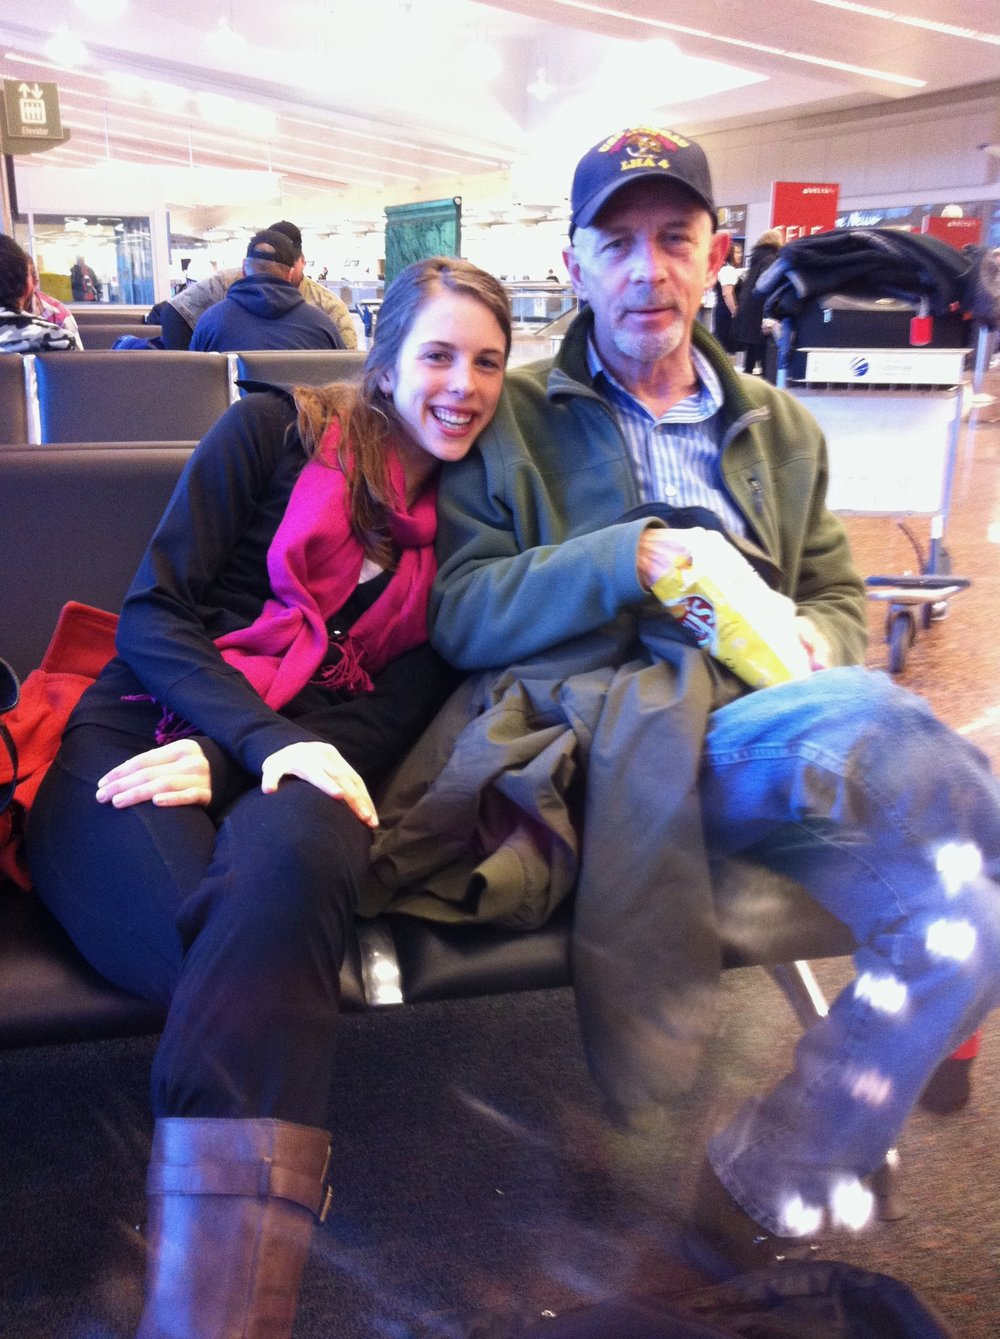 Dad and me waiting for my flight